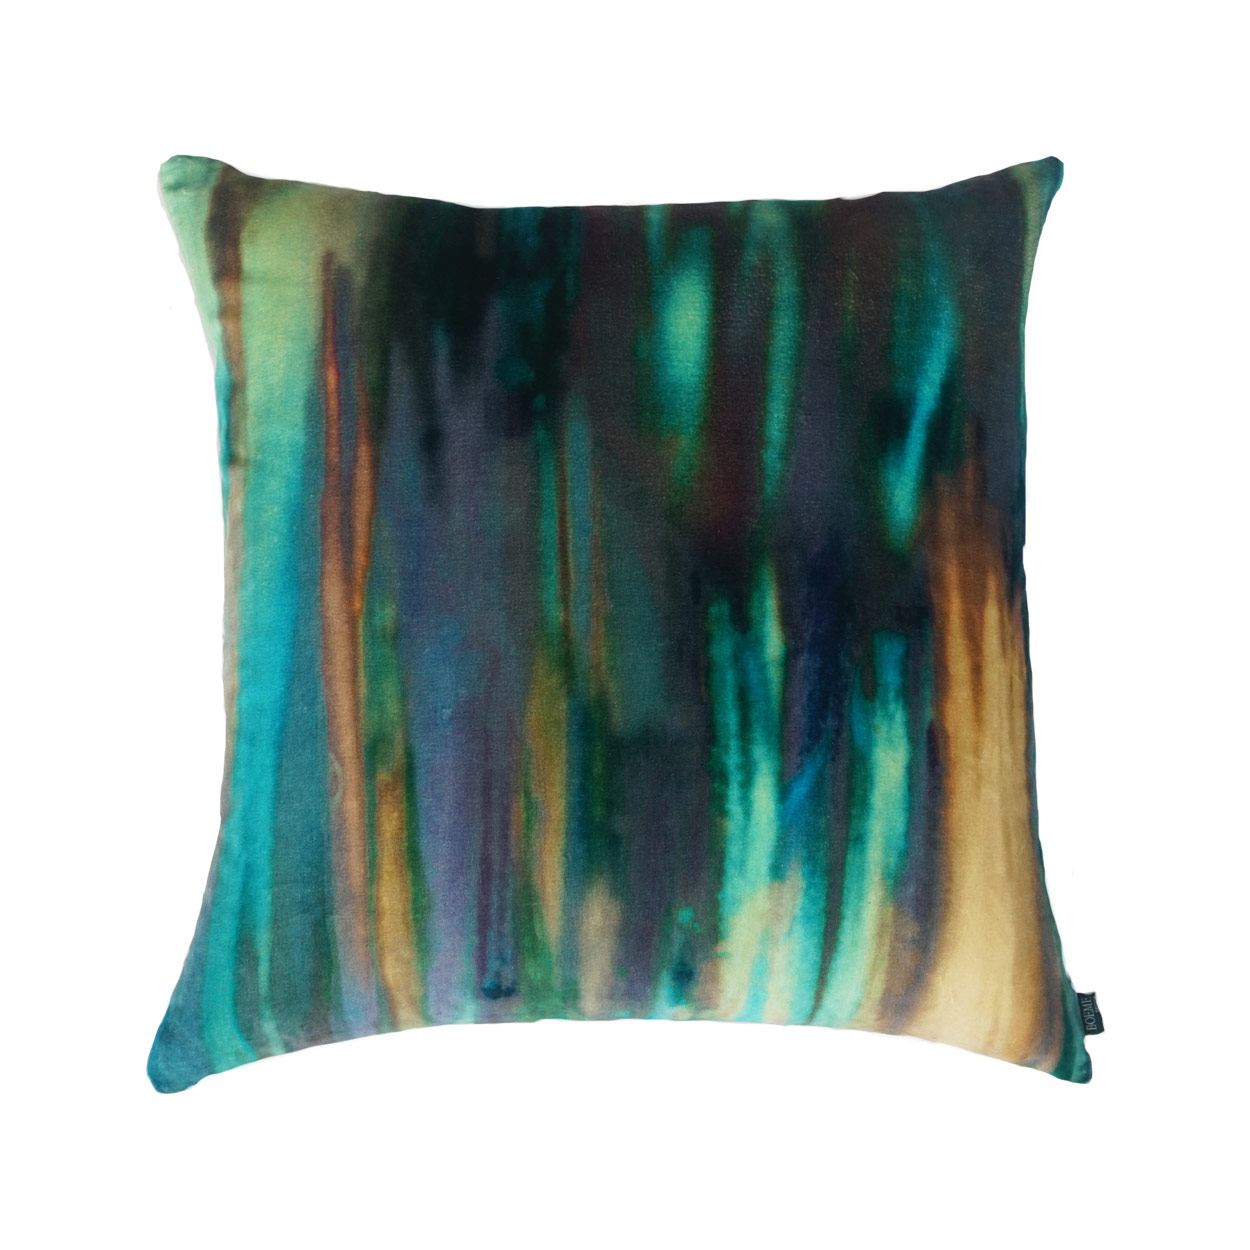 Boeme Cushion - Strata Patina